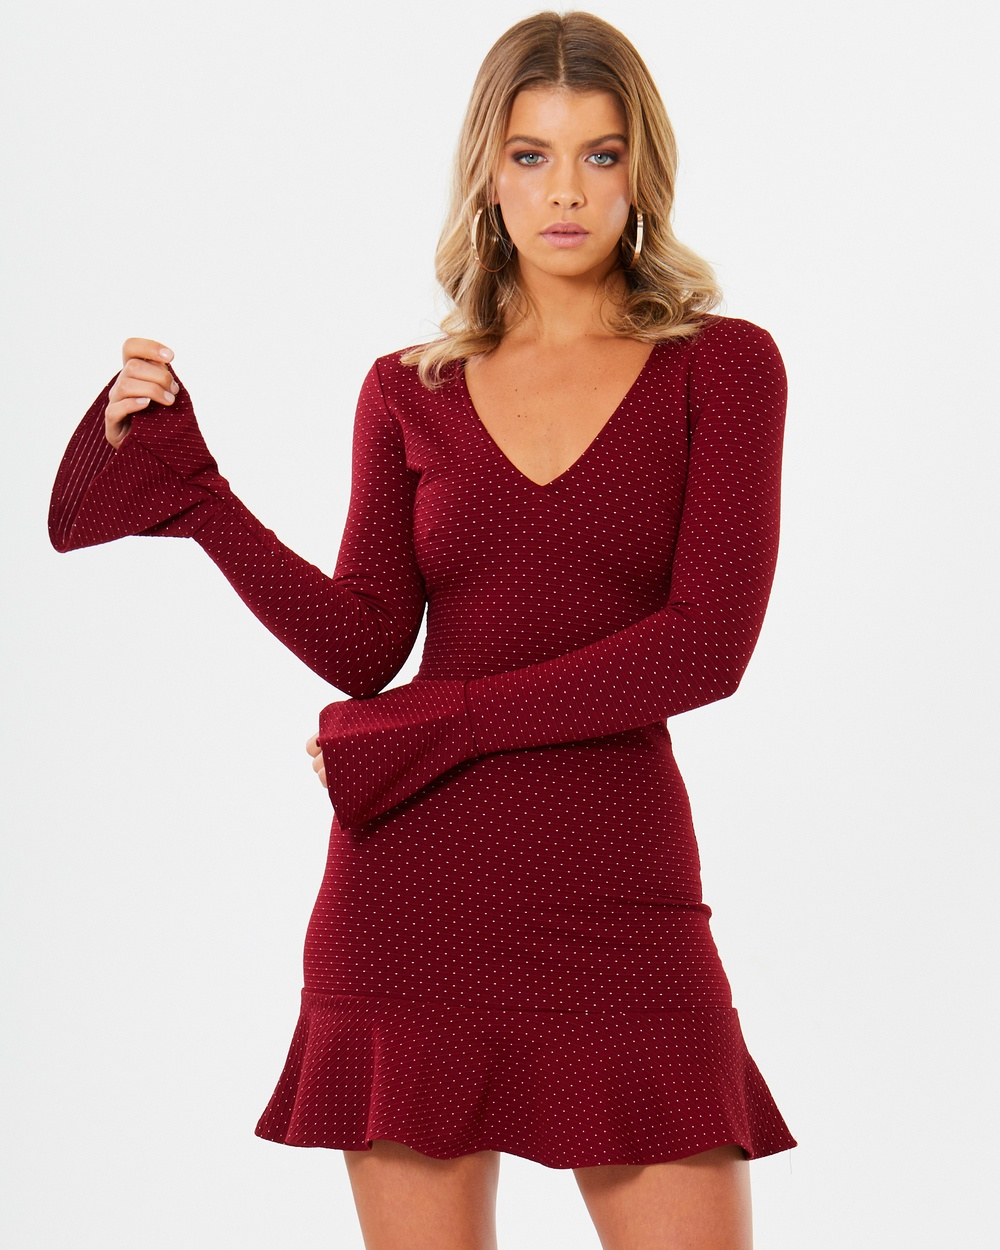 Photo of Tussah Red Polka Dot Iona Knit Dress - beautiful dress from Tussah online